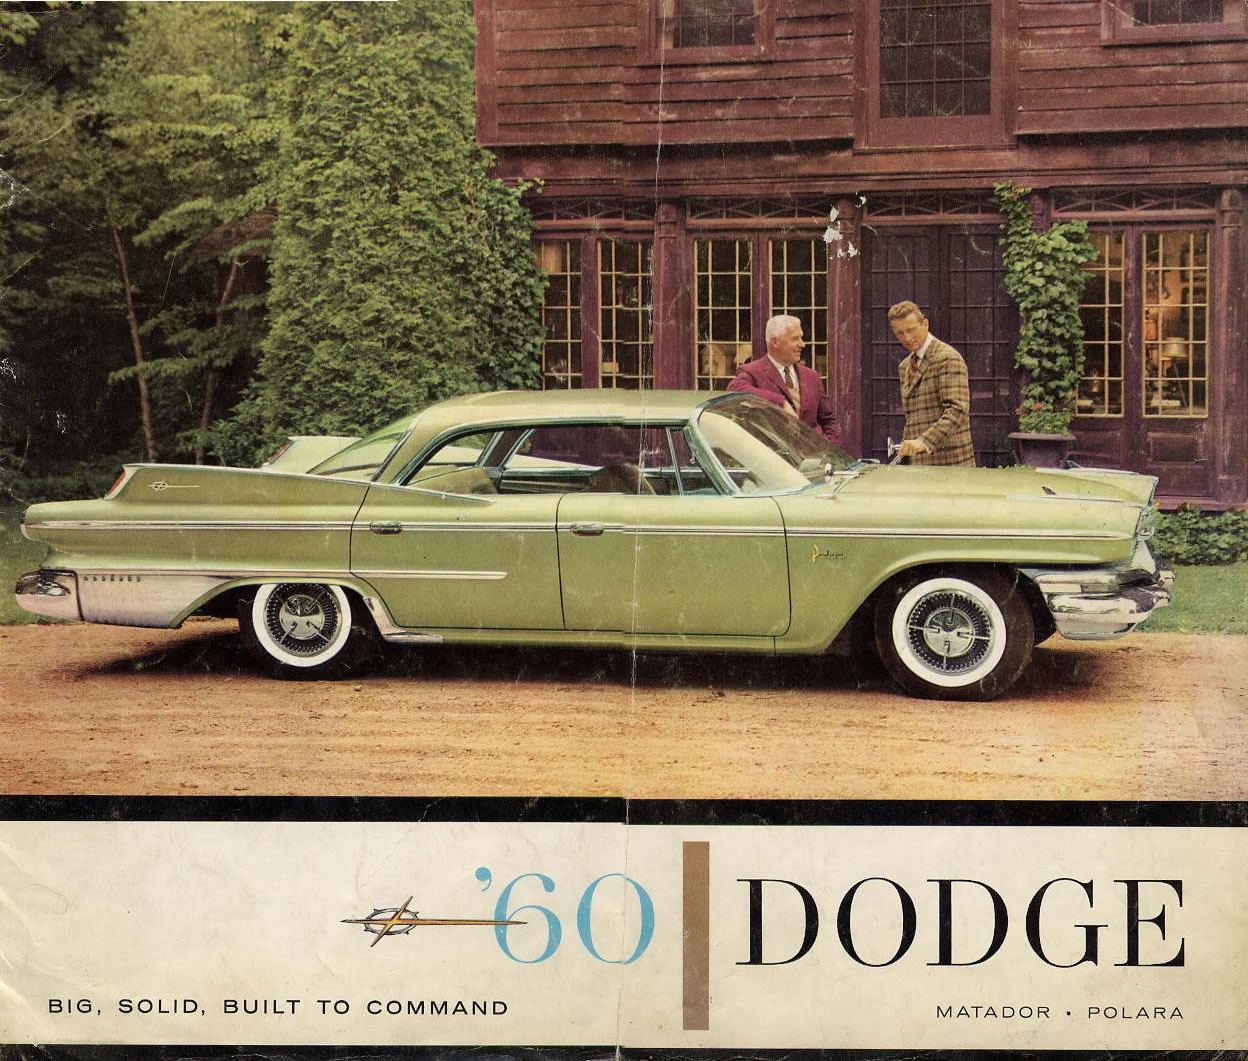 Dodge. Big, Solid, Built to Command... Sounds more like BDSM rather ...